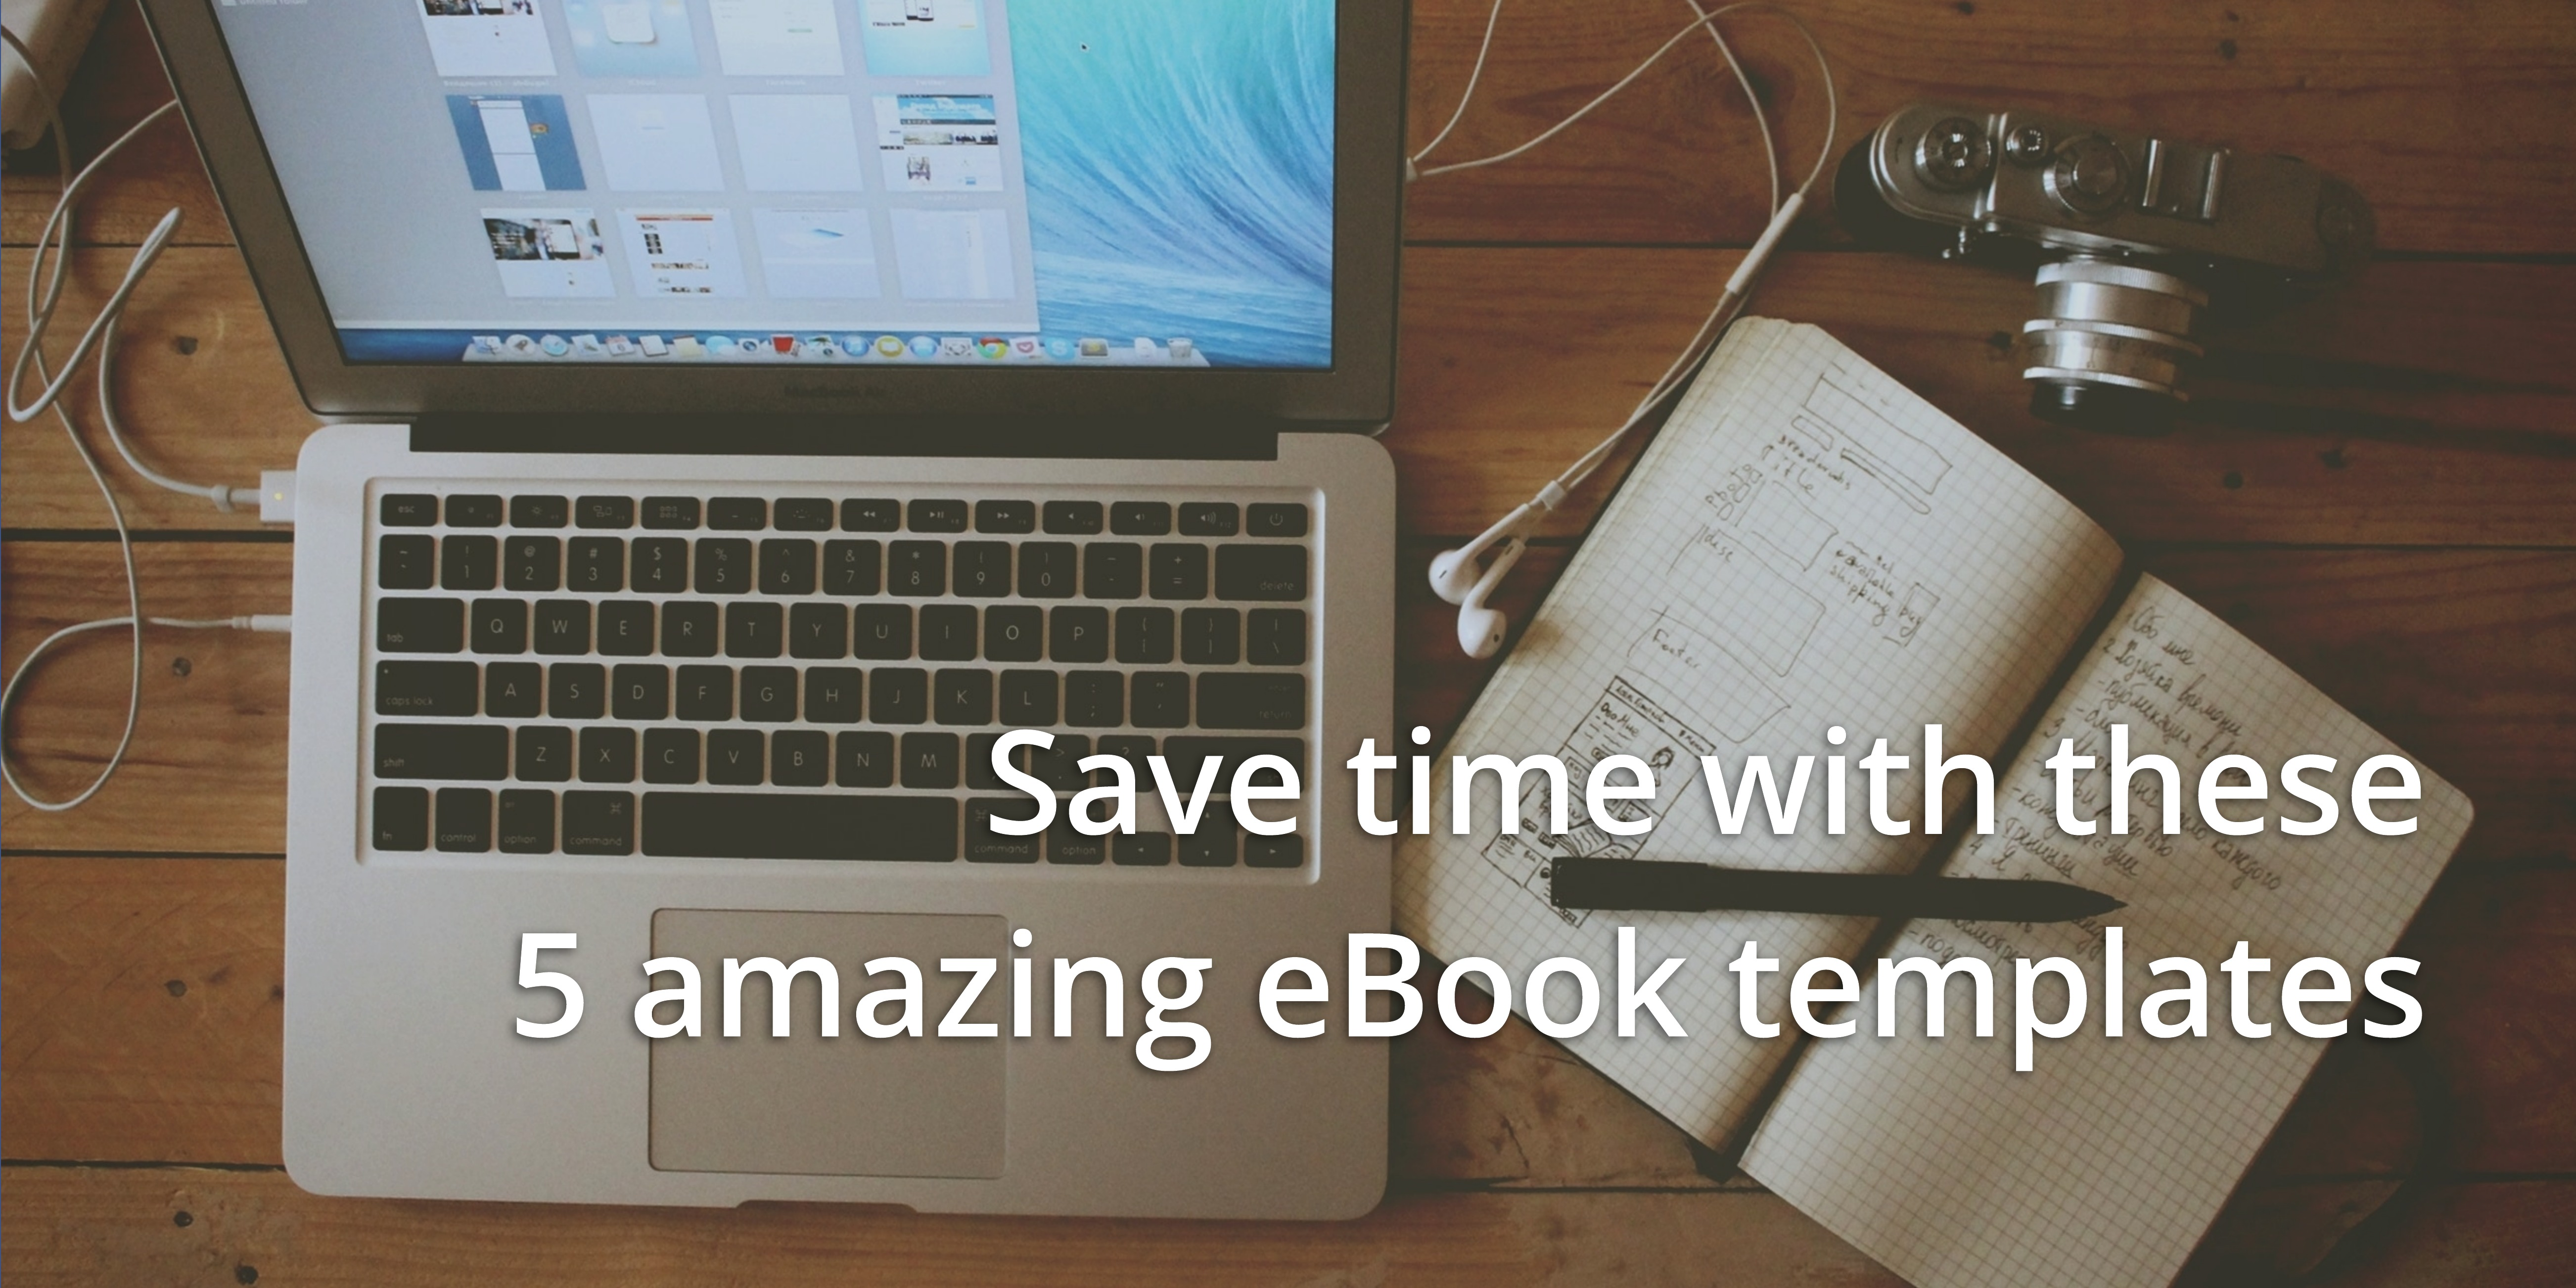 save time with these 5 amazing ebook templates for content marketers